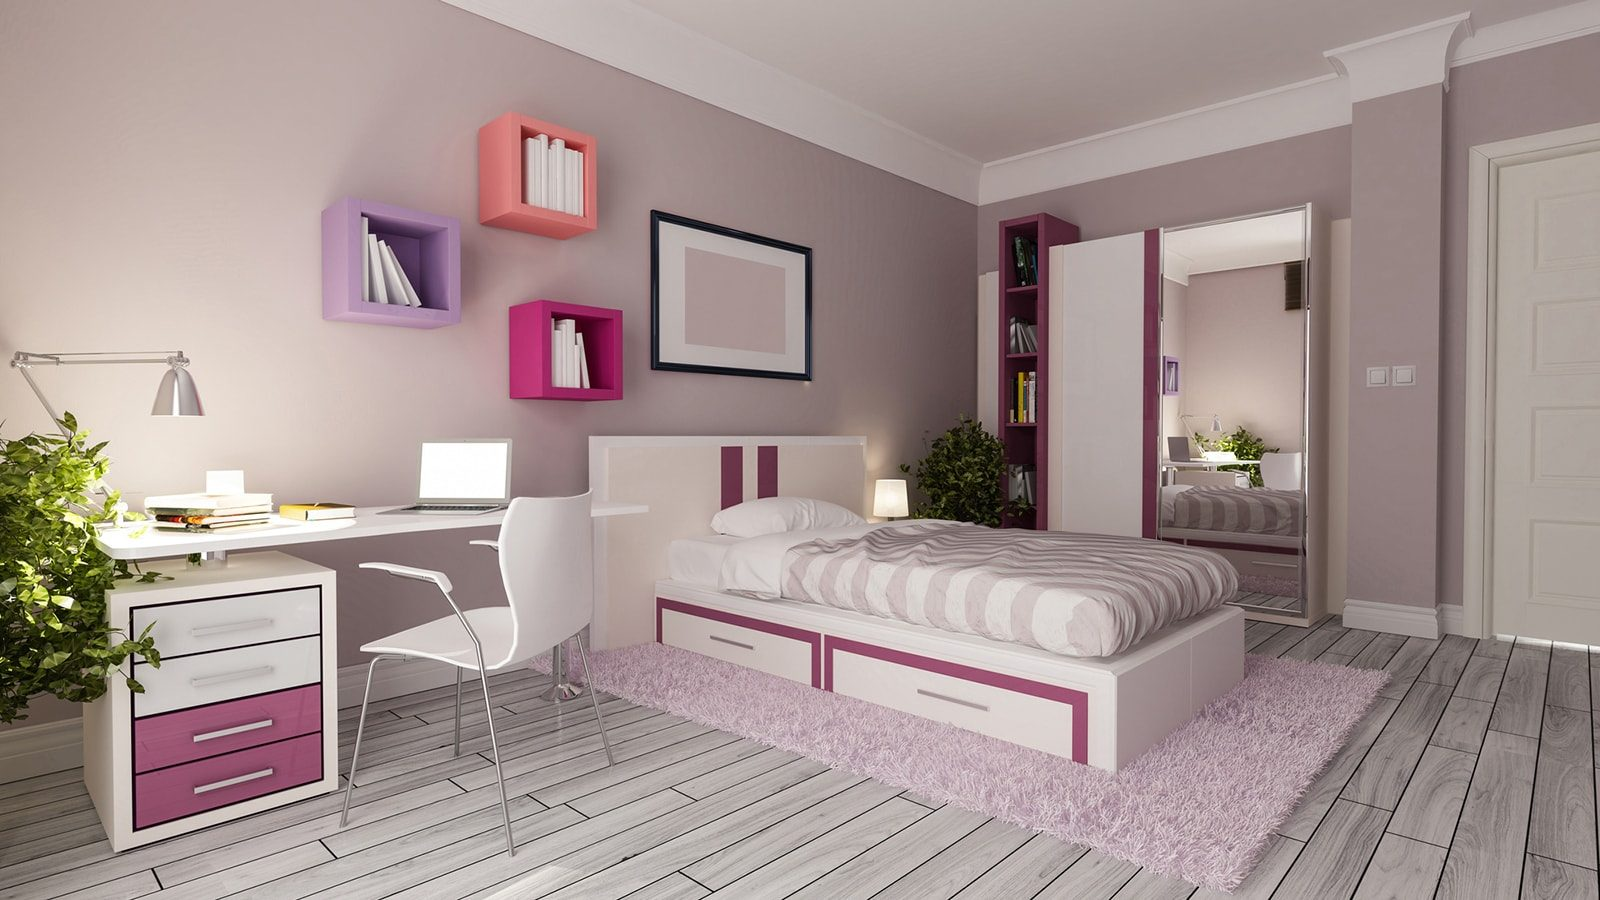 4 Teen Bedroom Ideas That Will Help You Liven Up Your Child's Space